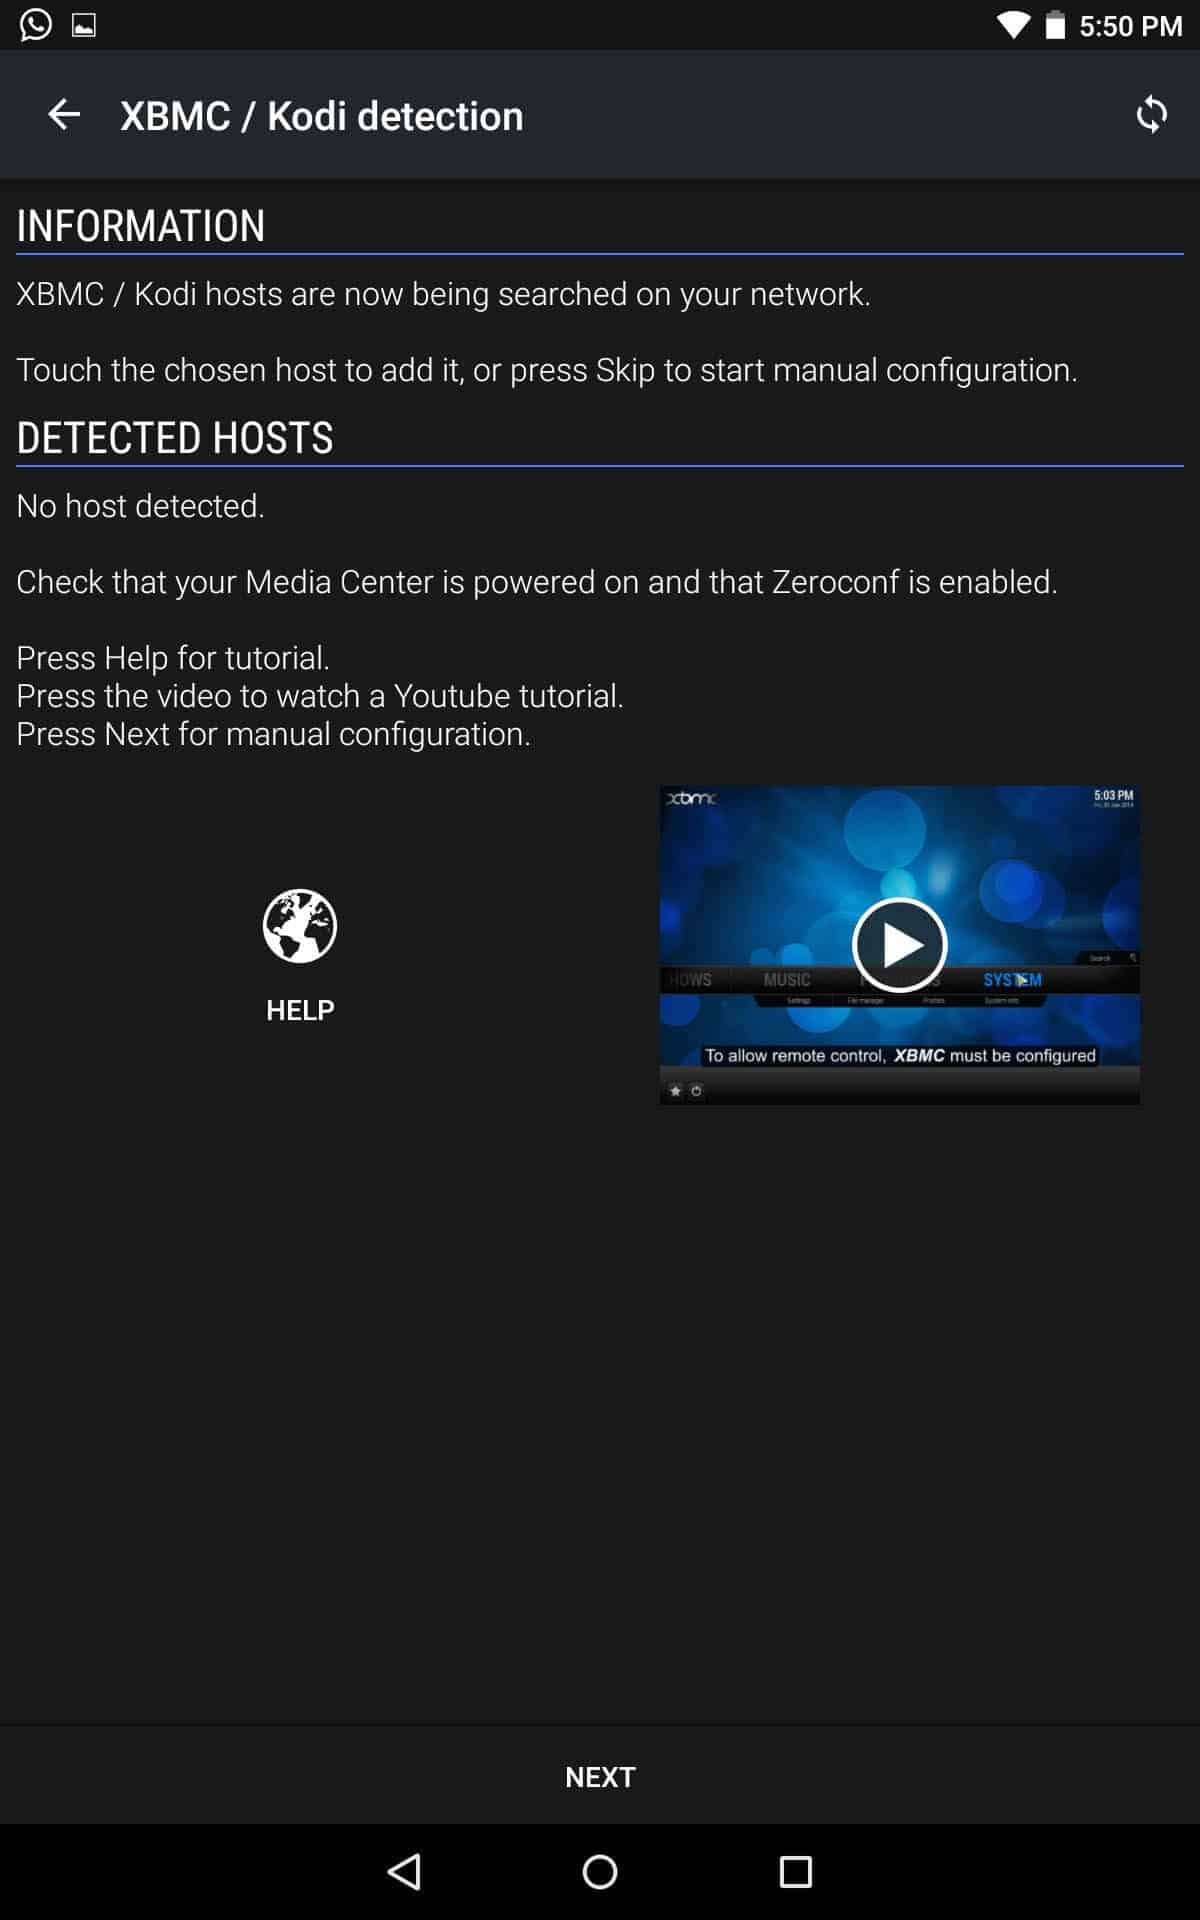 Guide: How to install Yatse, the XBMC/Kodi Remote? on